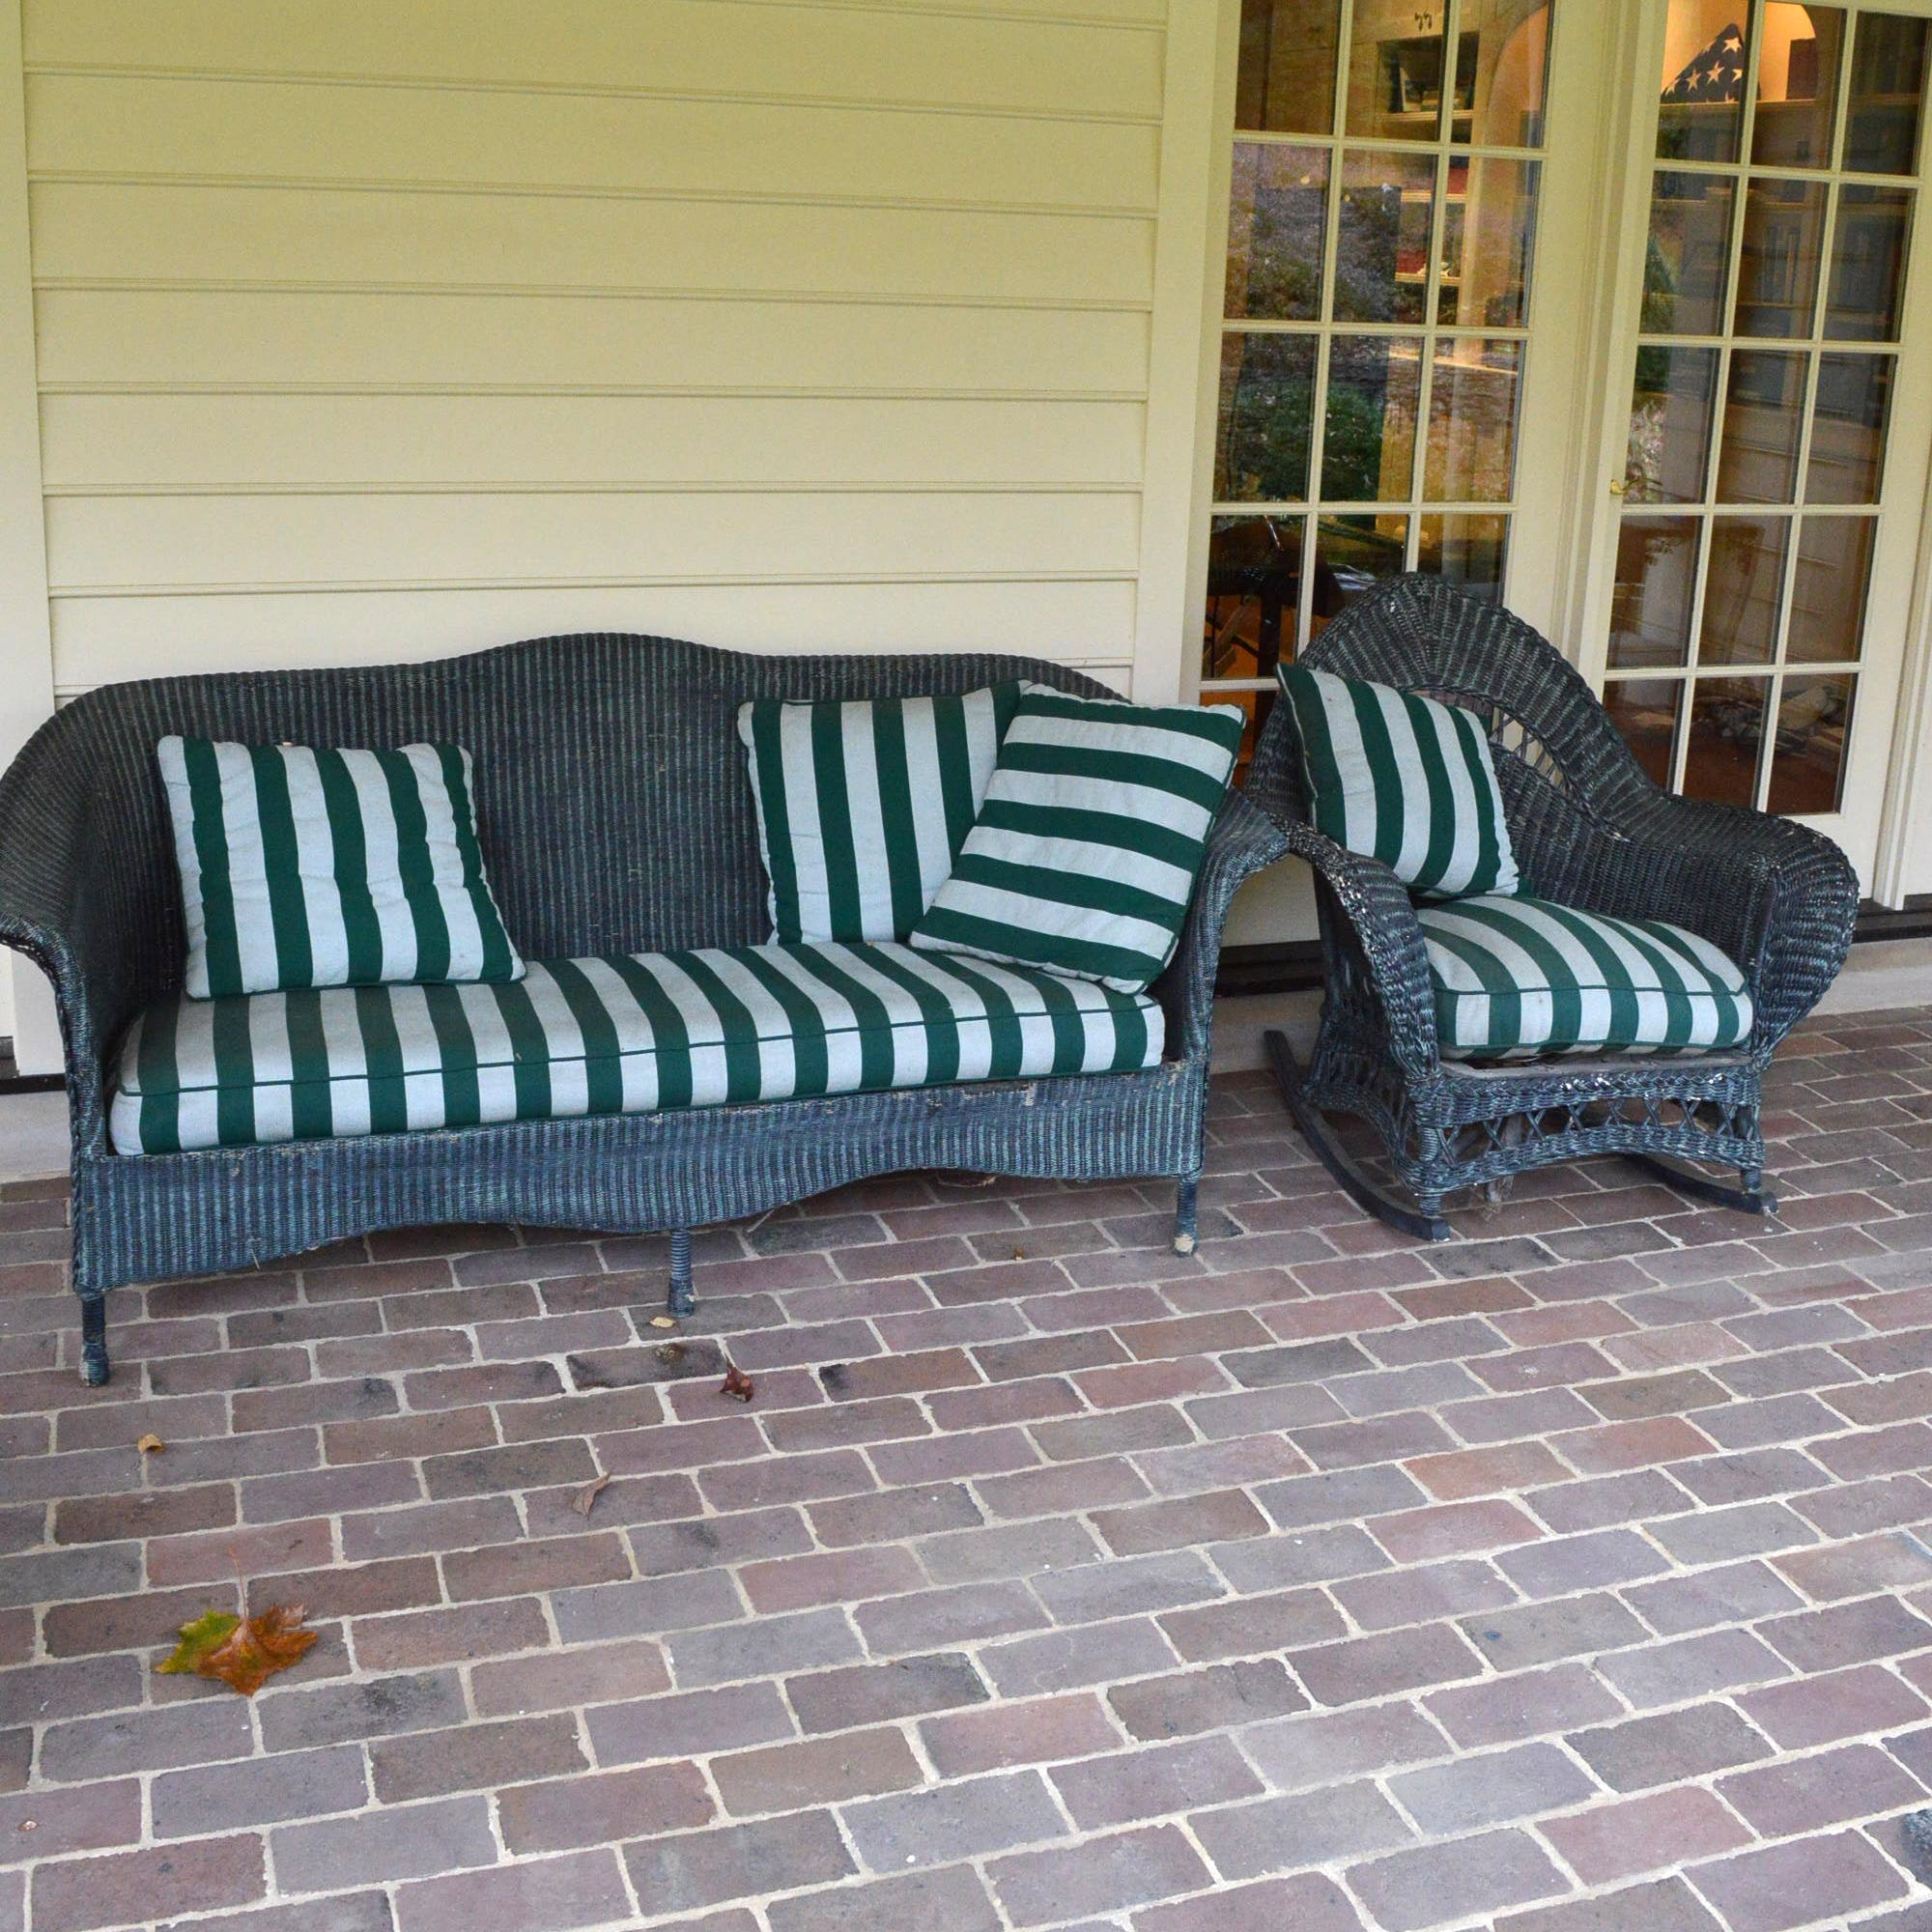 Wicker Weave Patio Rocking Chair and Sofa